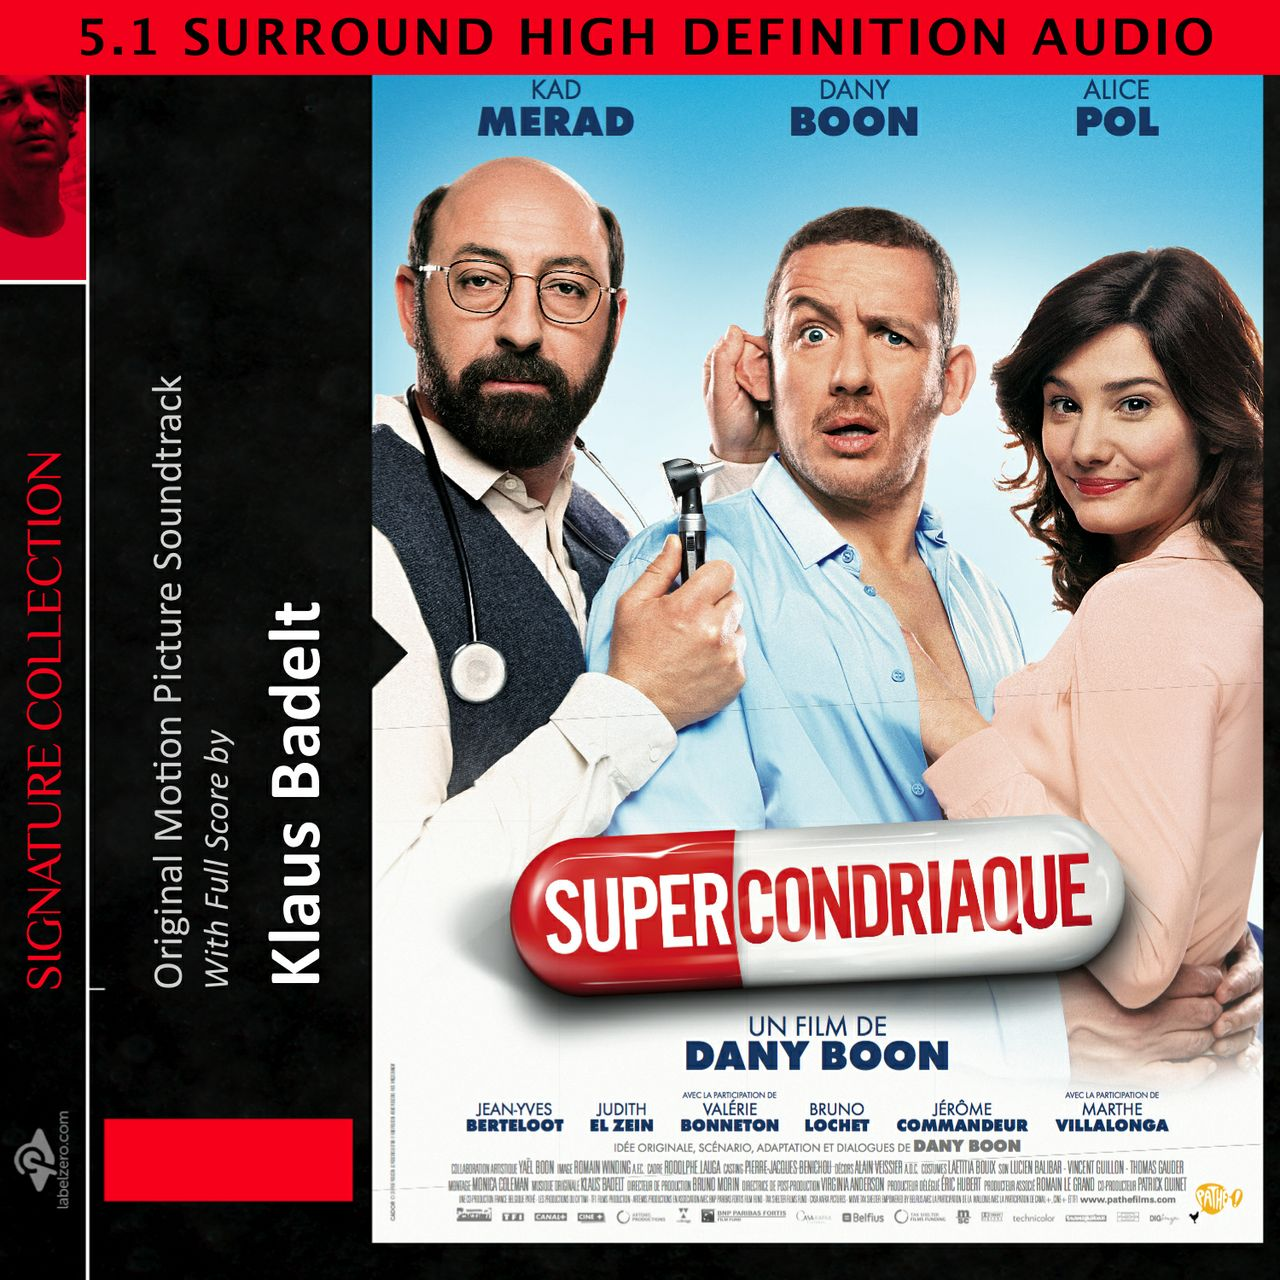 Supercondriaque (Original Score) - FLAC Surround 24 Bit